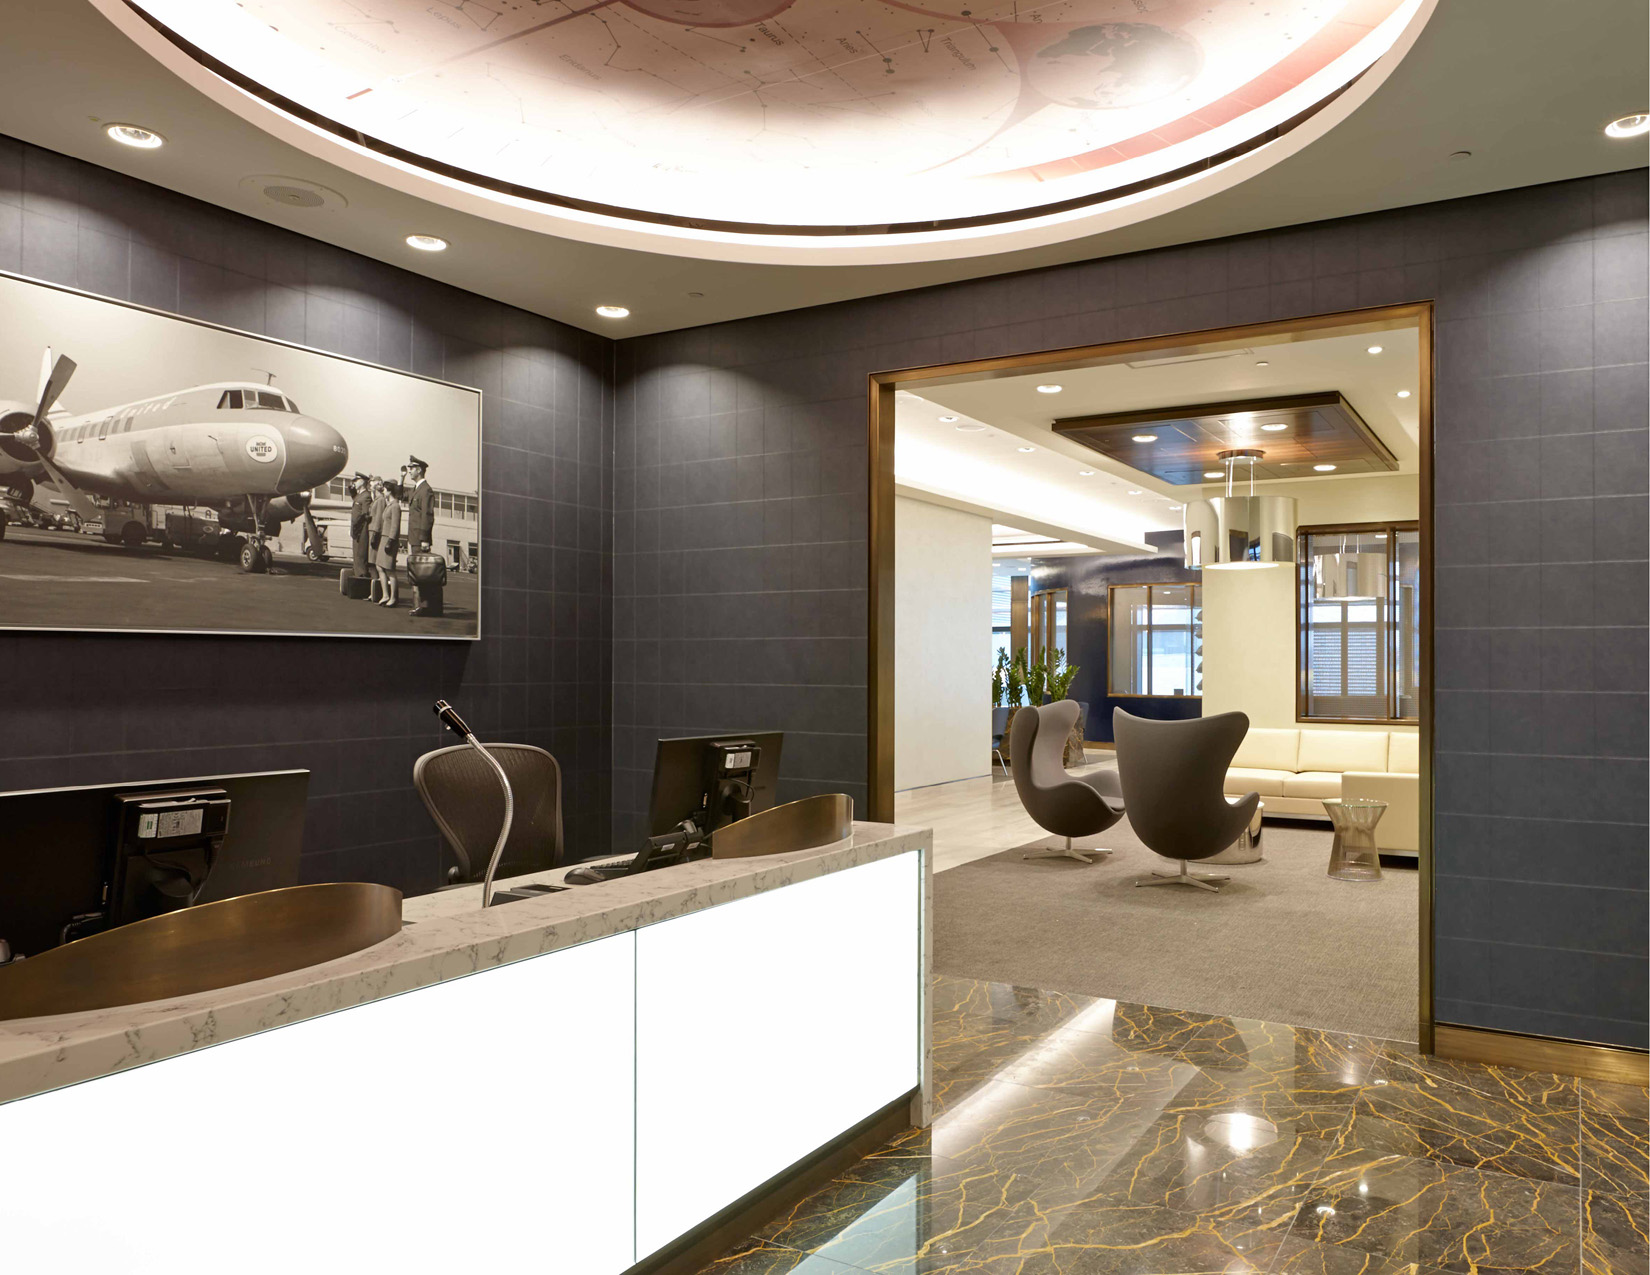 The Project Sets A New Standard For International Lounge Design By Elevating Concept Of Traveler Luxury And Utilizing United Brand To Serve